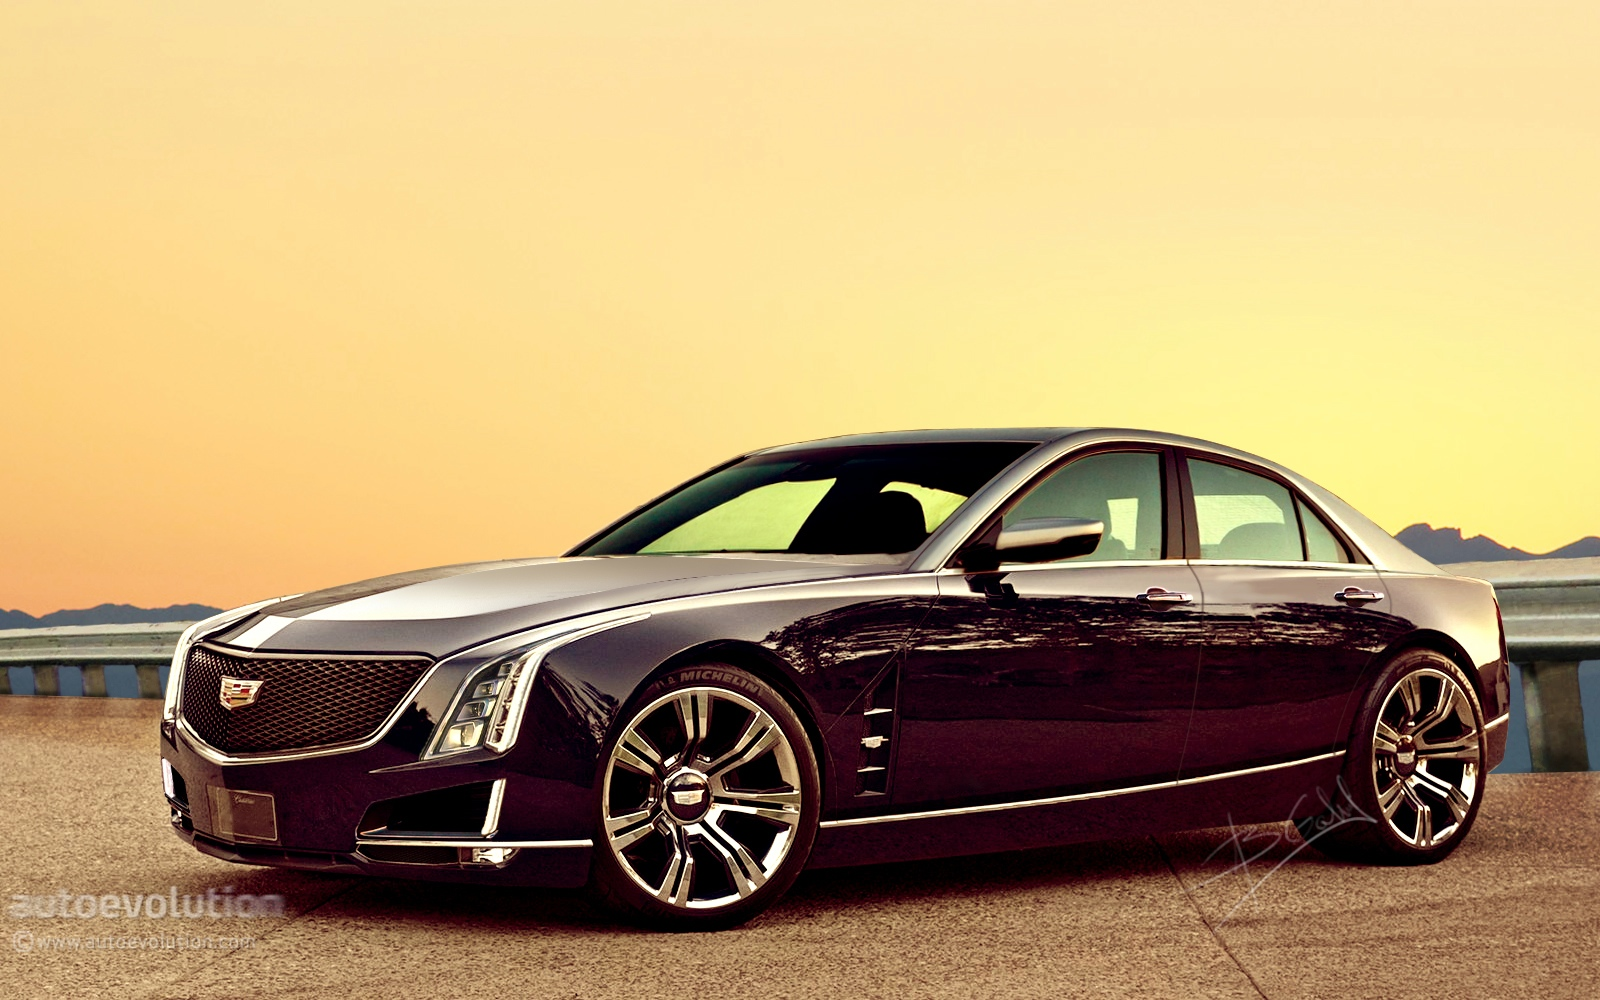 2016 Cadillac Ct6 Featured On The Automaker S Website